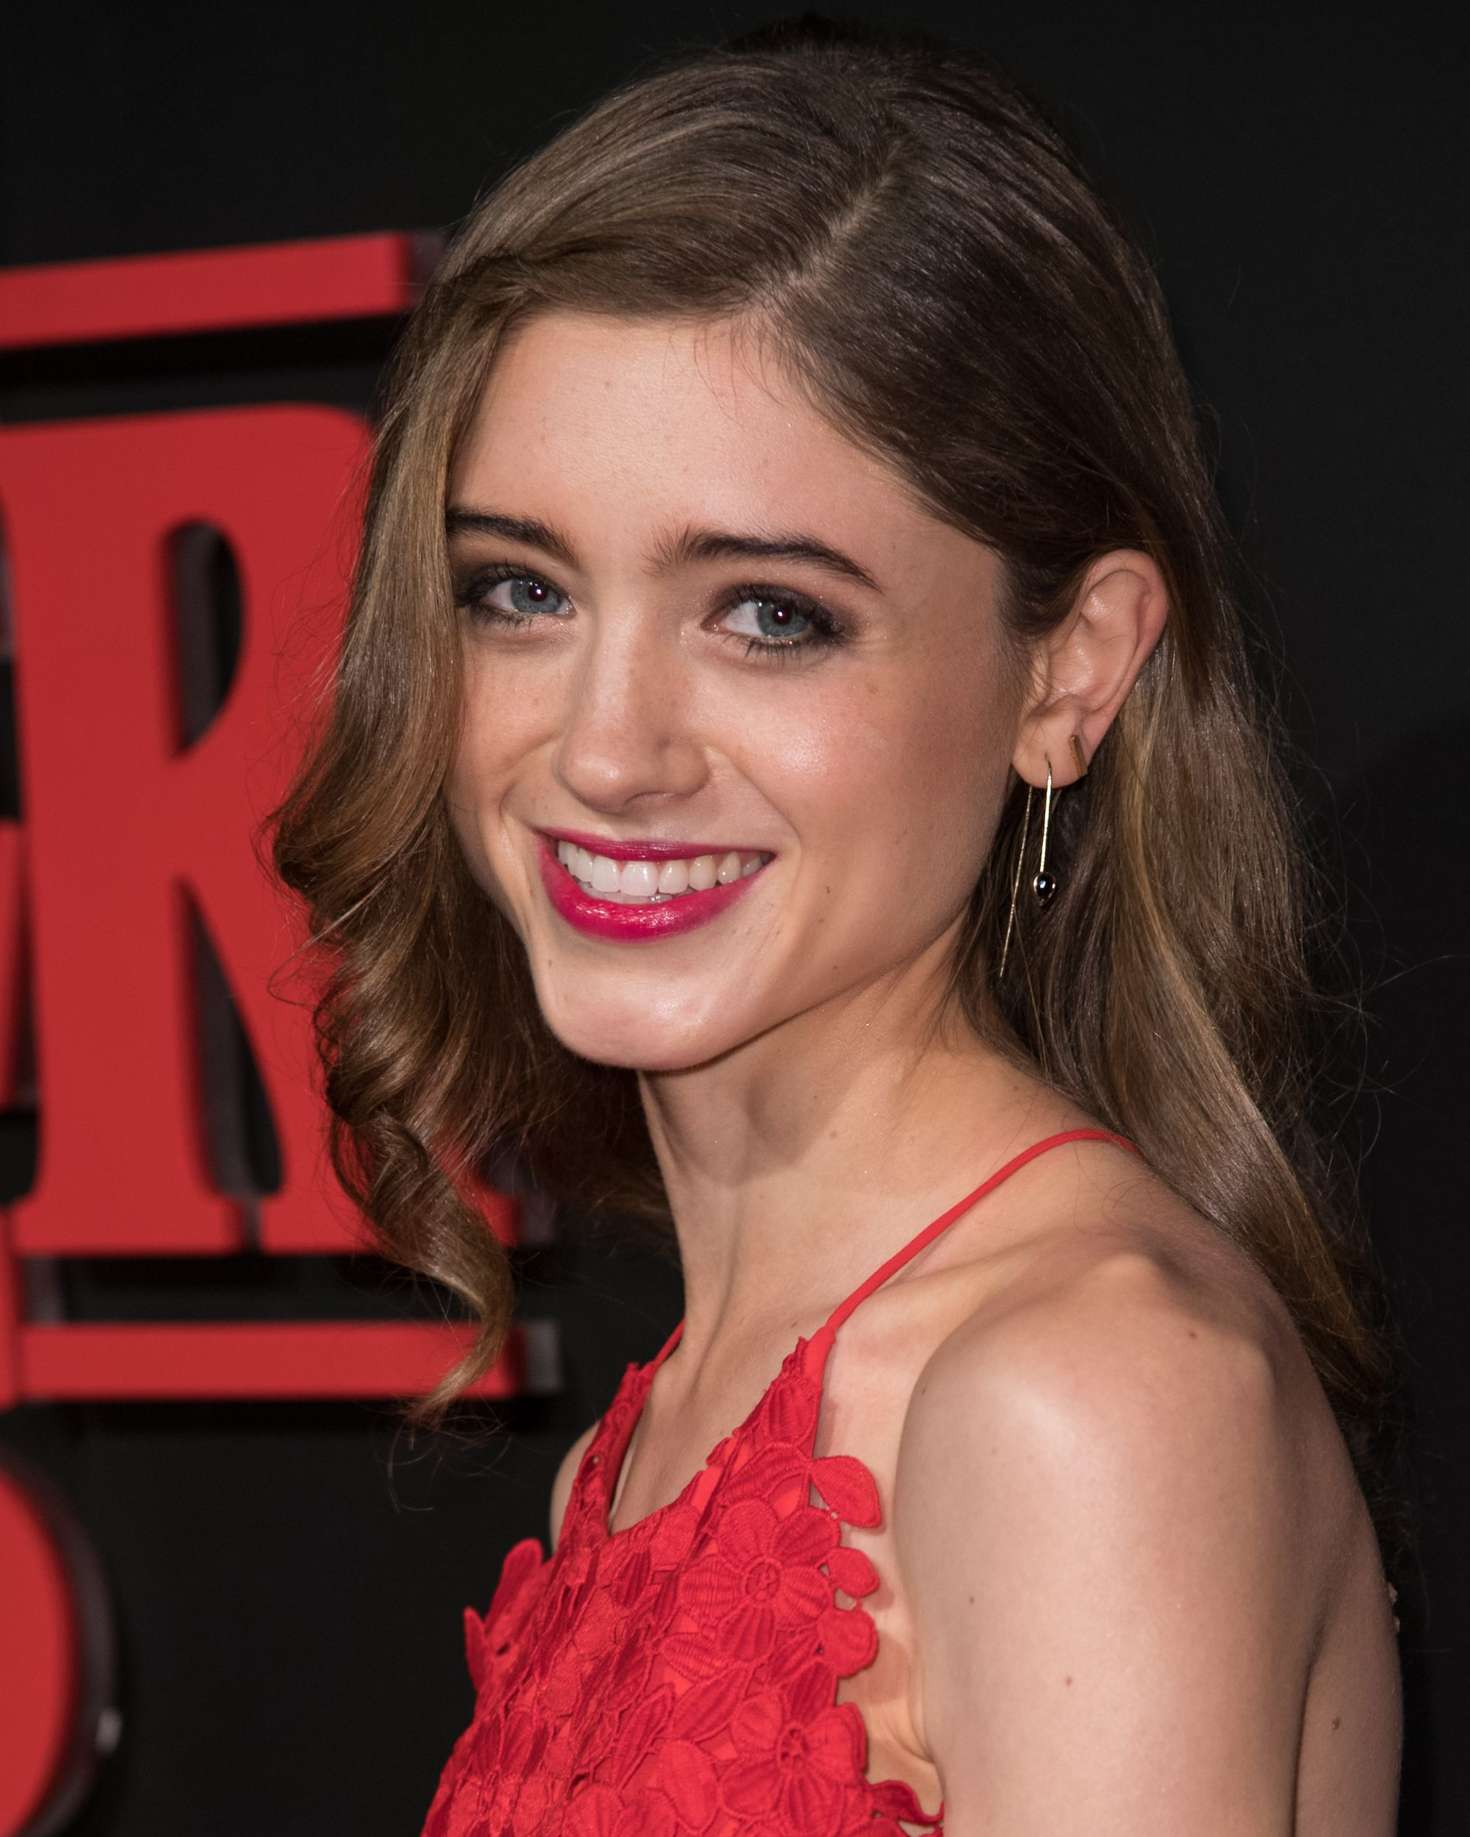 ICloud Natalia Dyer nude (95 photos), Tits, Cleavage, Instagram, see through 2006